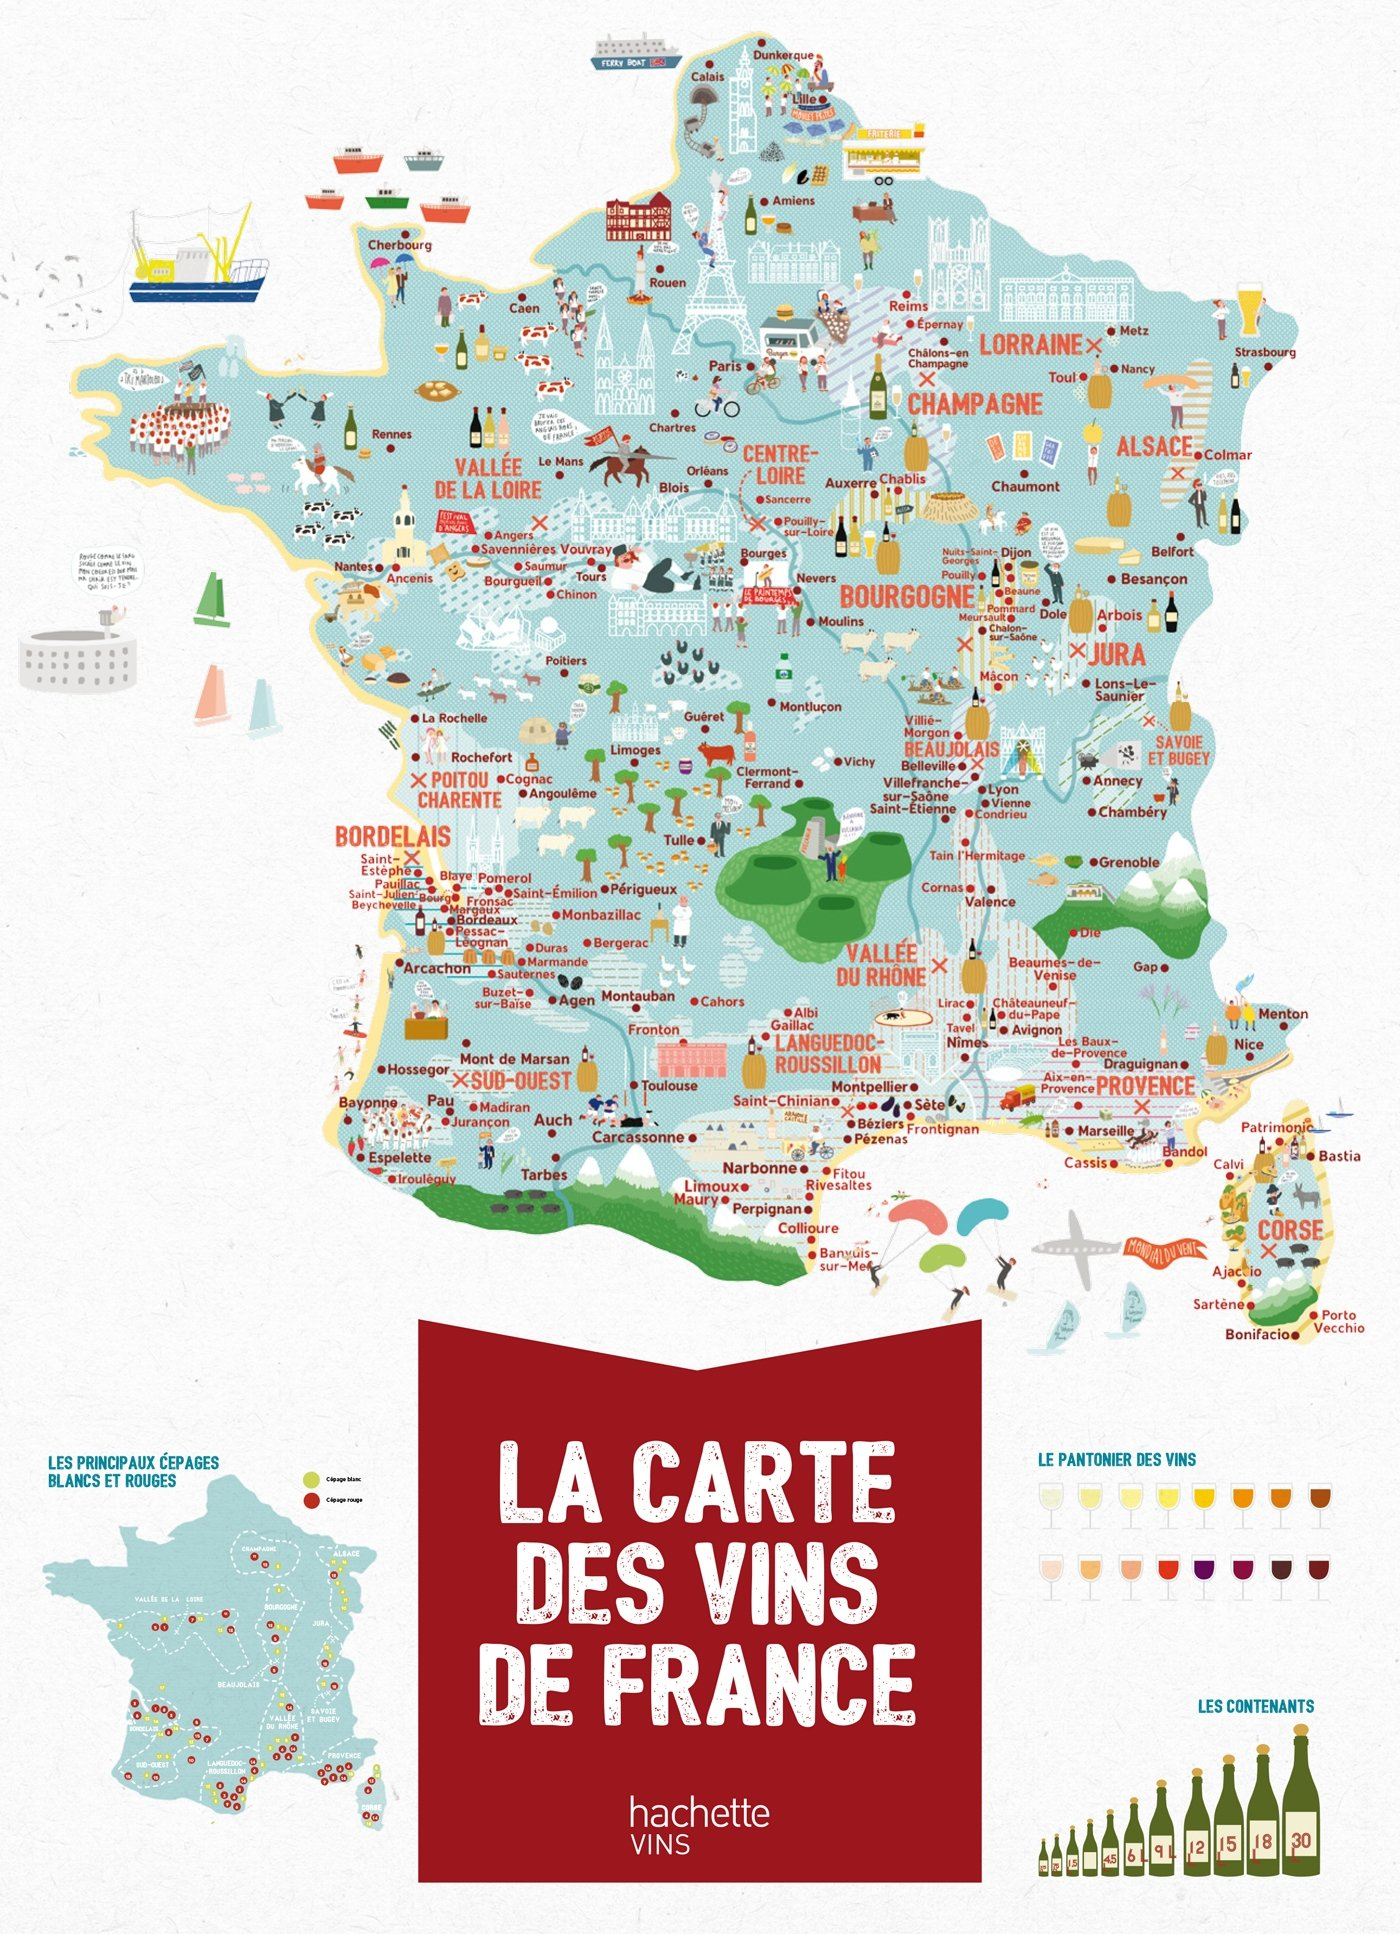 carte des vignobles de france La carte des vins de France (French Edition): Denturck, Melody